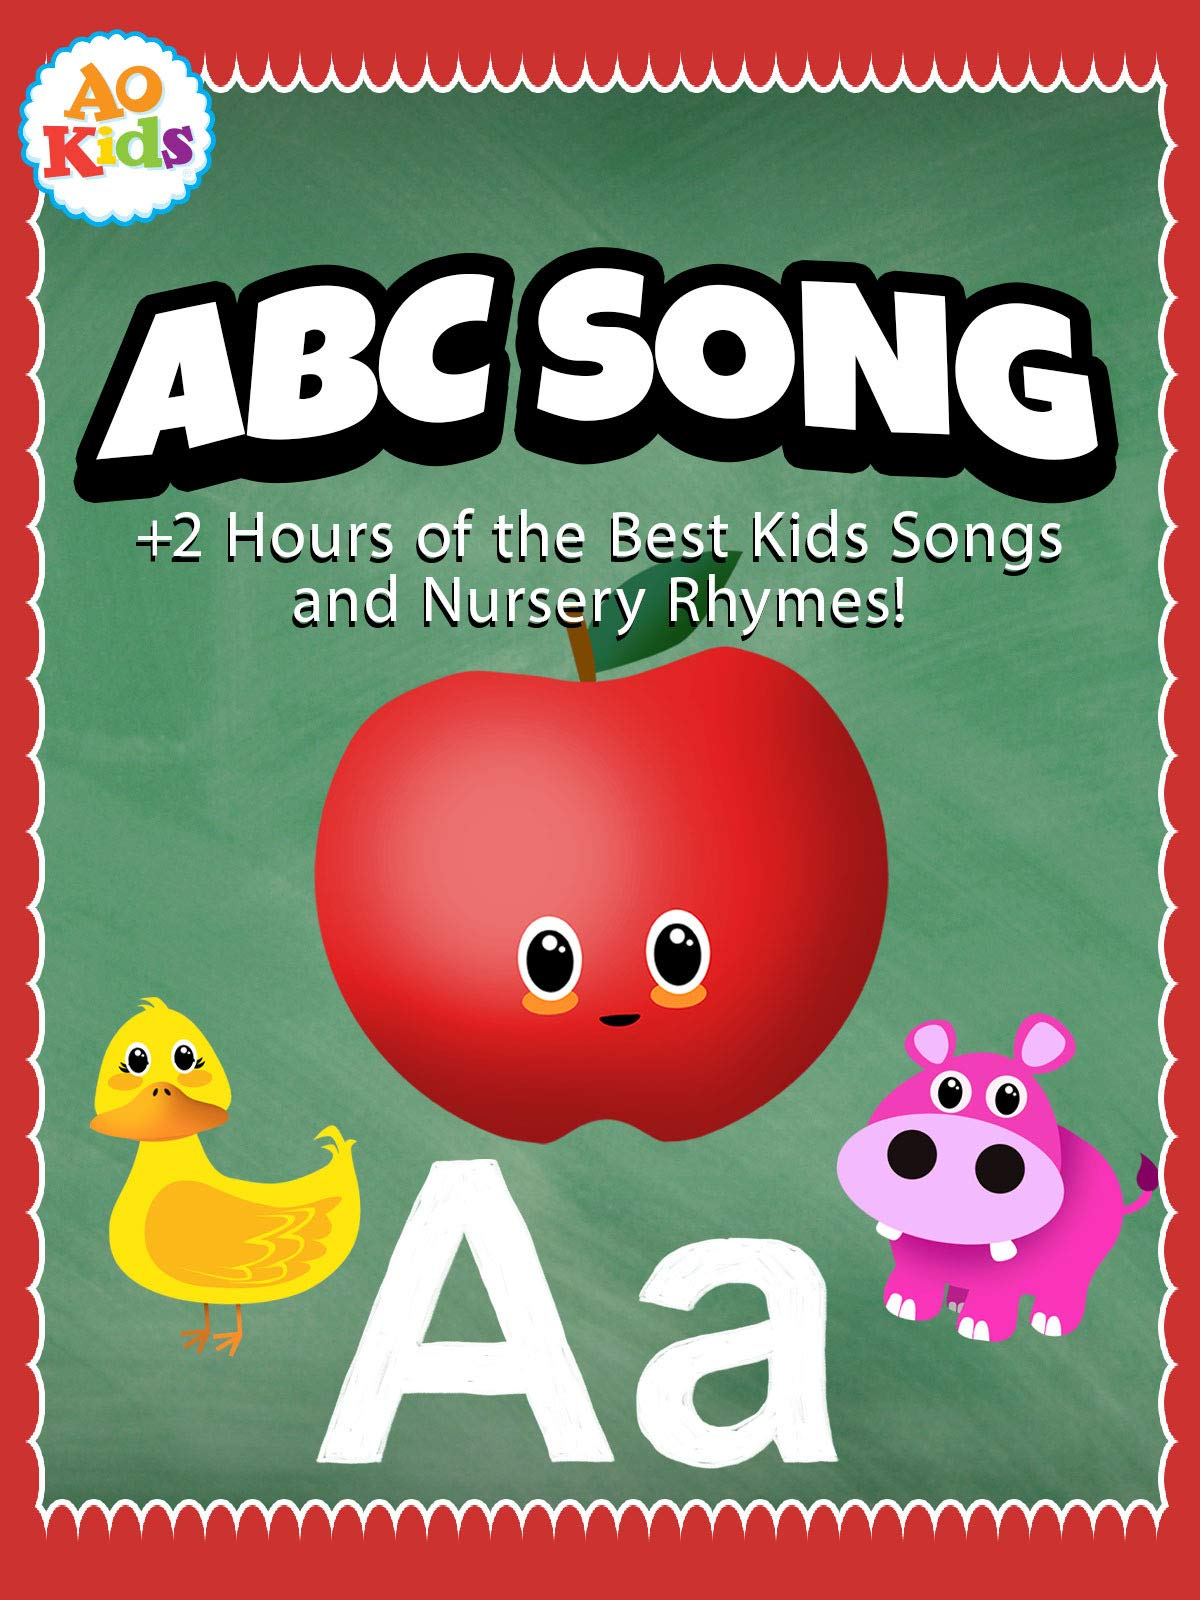 ABC Song + 2 Hours of the Best Kids Songs and Nursery Rhymes! - AO Kids on Amazon Prime Instant Video UK